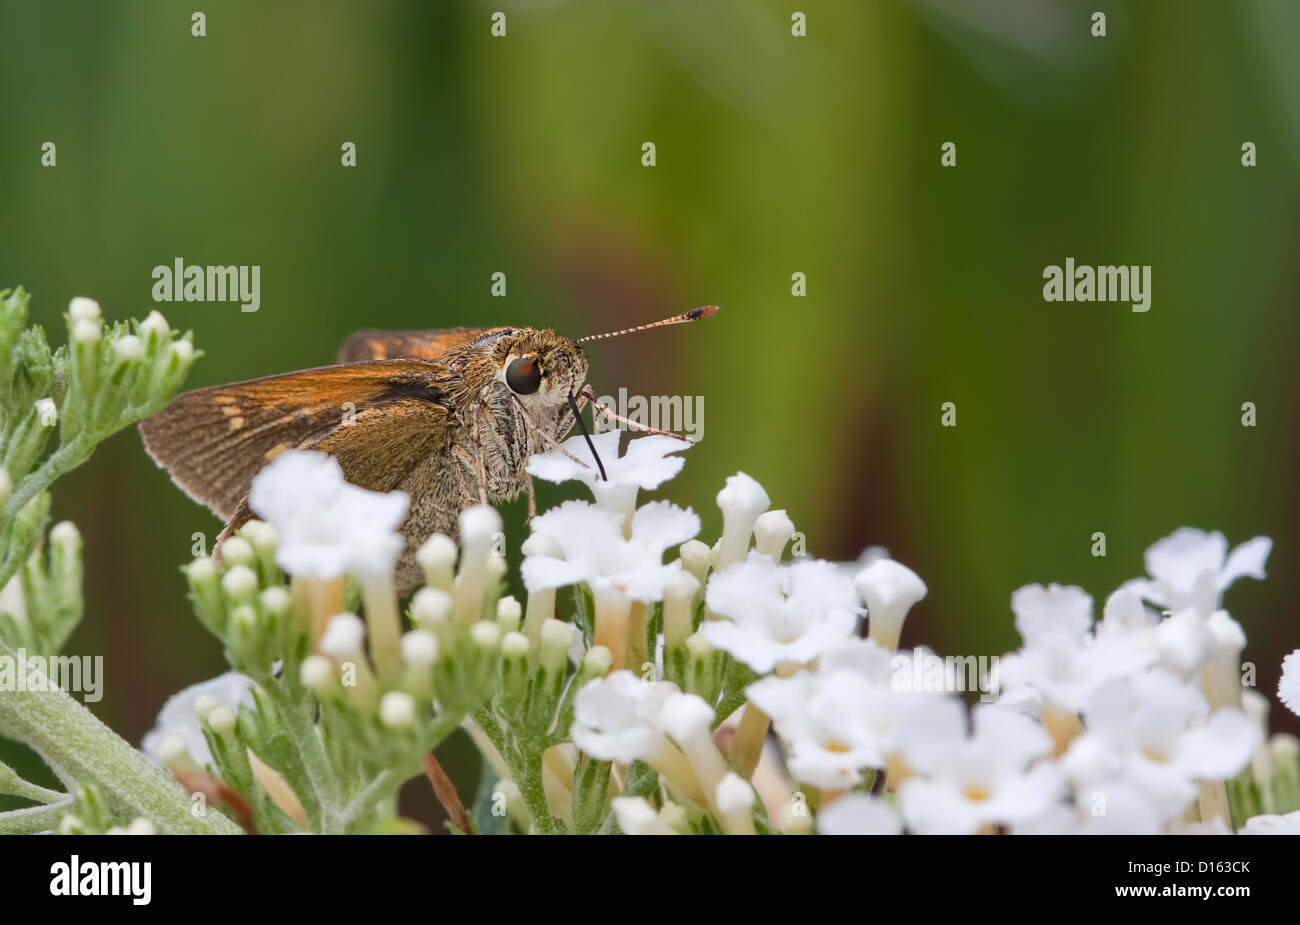 A Silver-Spotted Skipper Butterfly Sucking Nectar from a flower in a garden - Stock Image